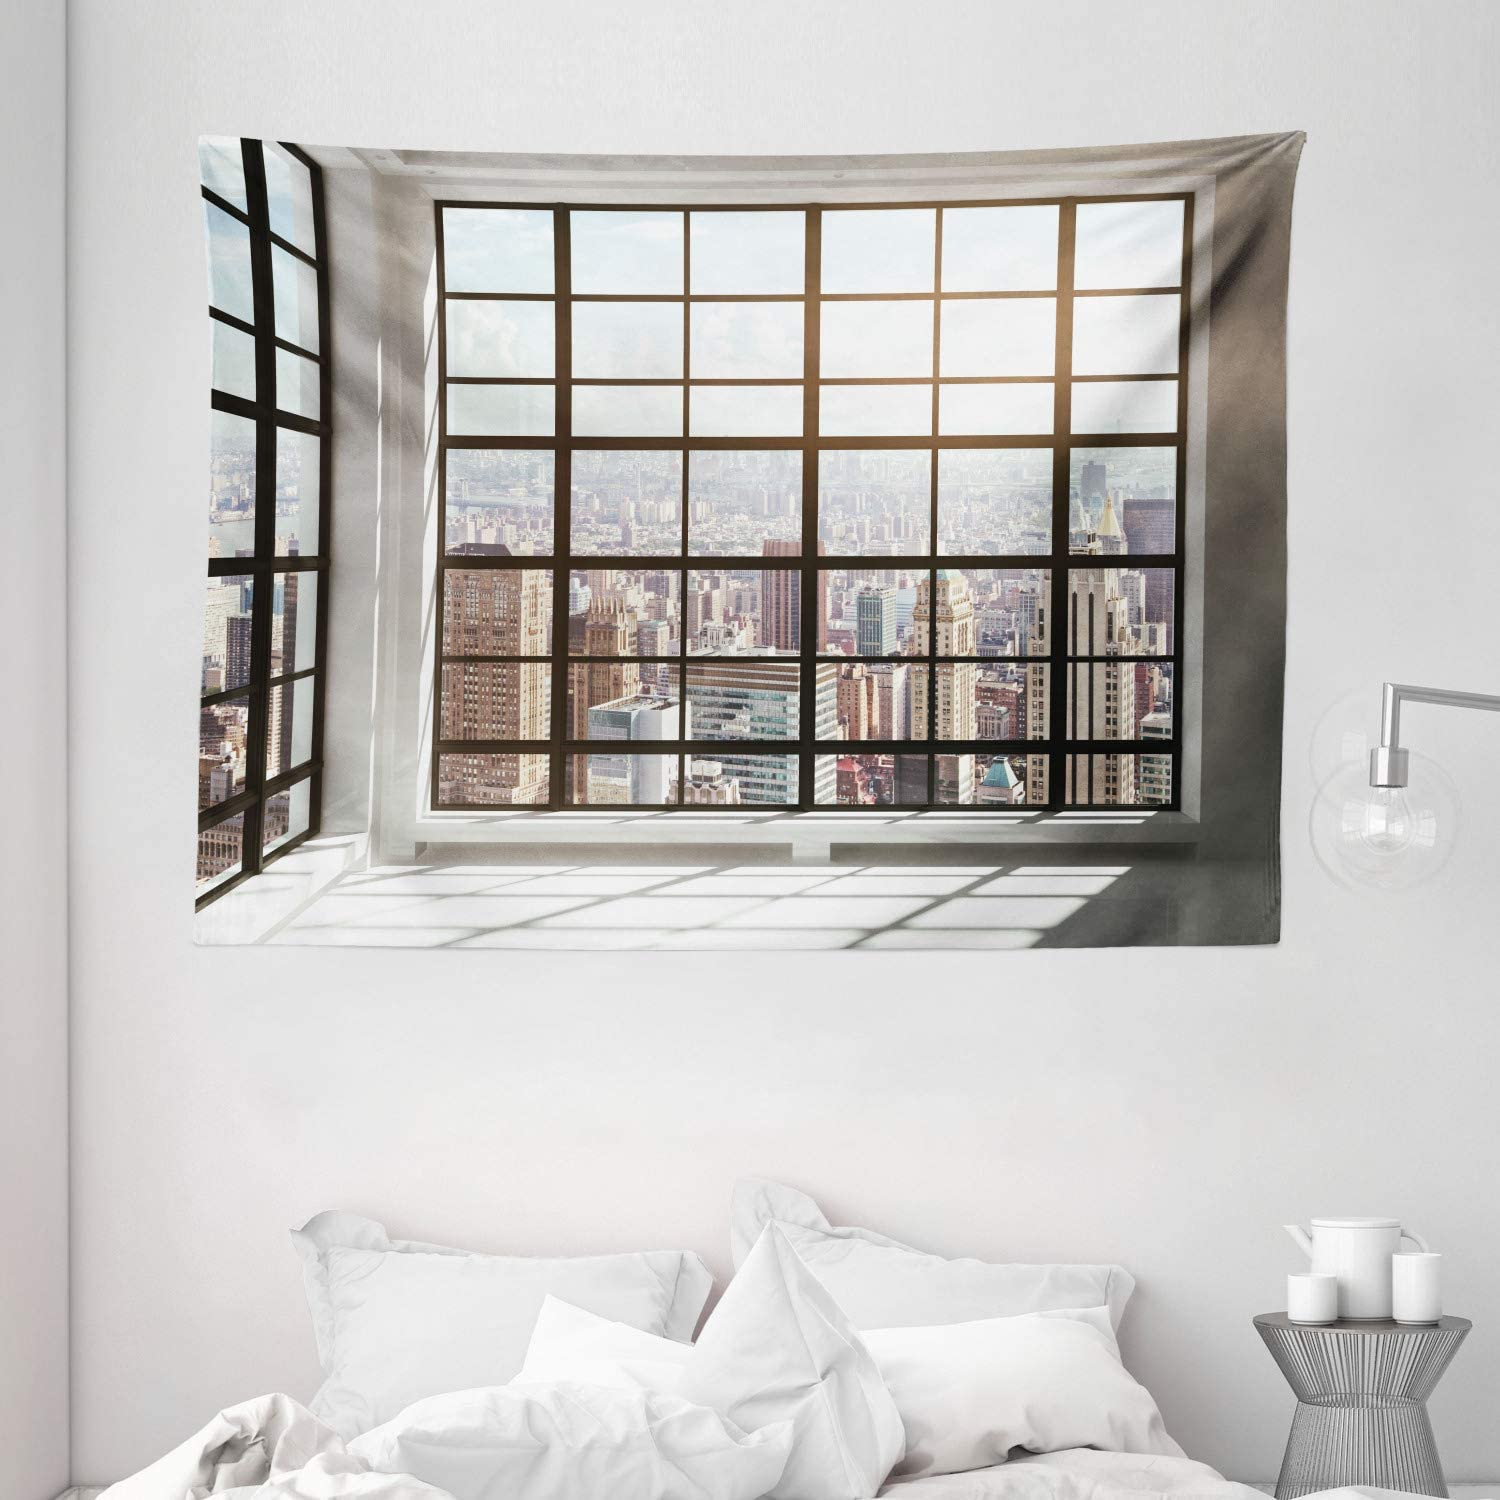 "Ambesonne Modern Tapestry, Urban City View of Apartments from Square Shape Windows Photograph, Wide Wall Hanging for Bedroom Living Room Dorm, 80"" X 60"", Brown White"